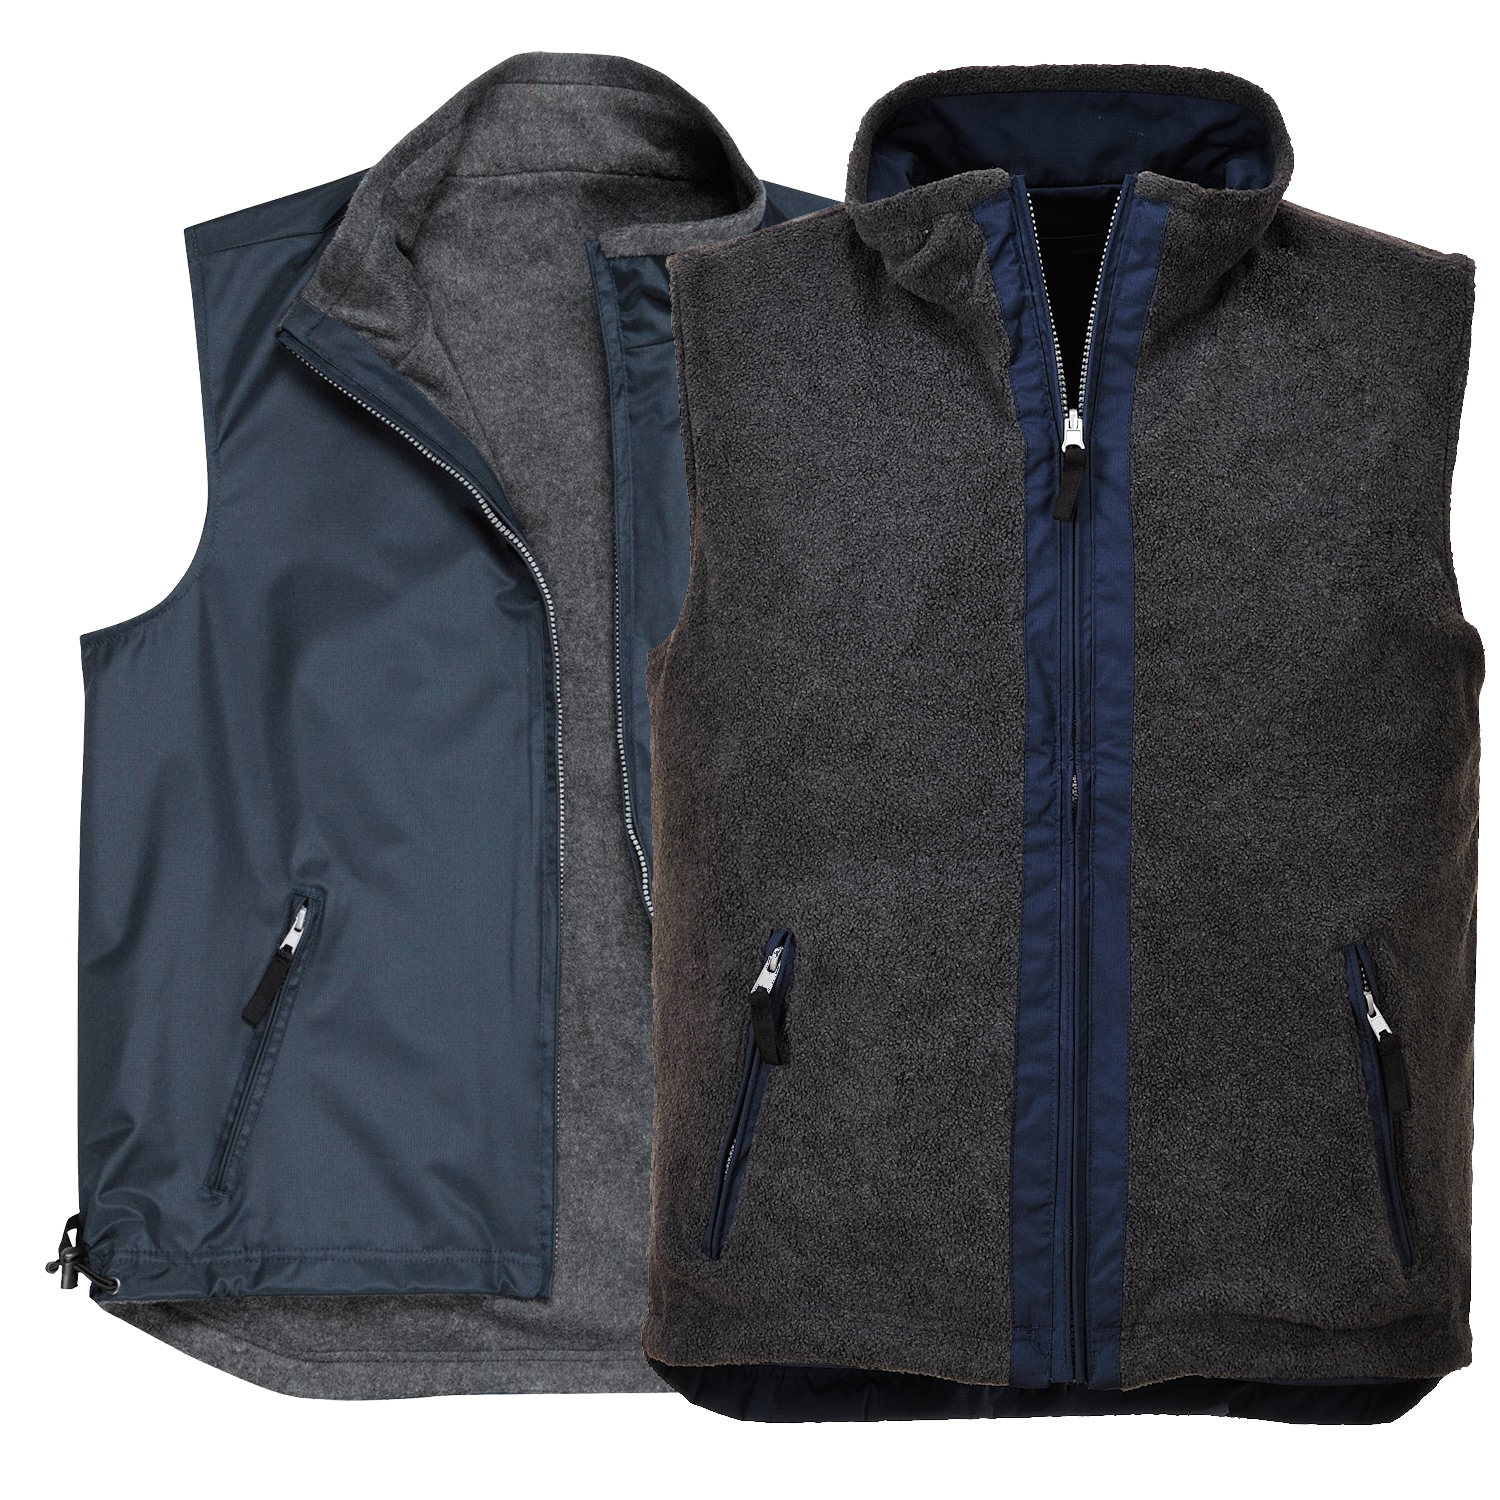 Portwest US418 reversible vest